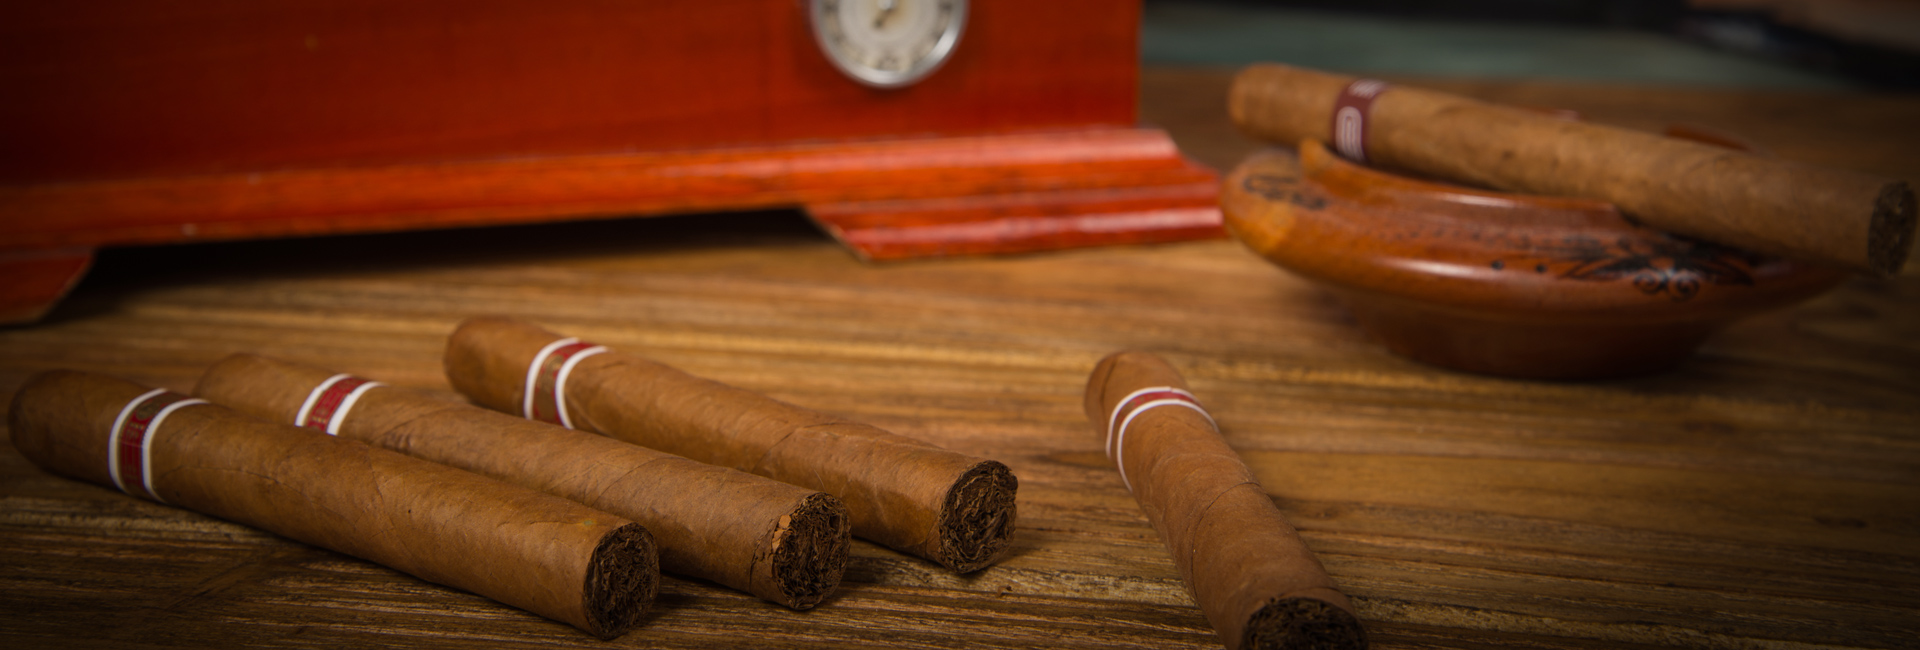 Multiple Cigars With Humidor